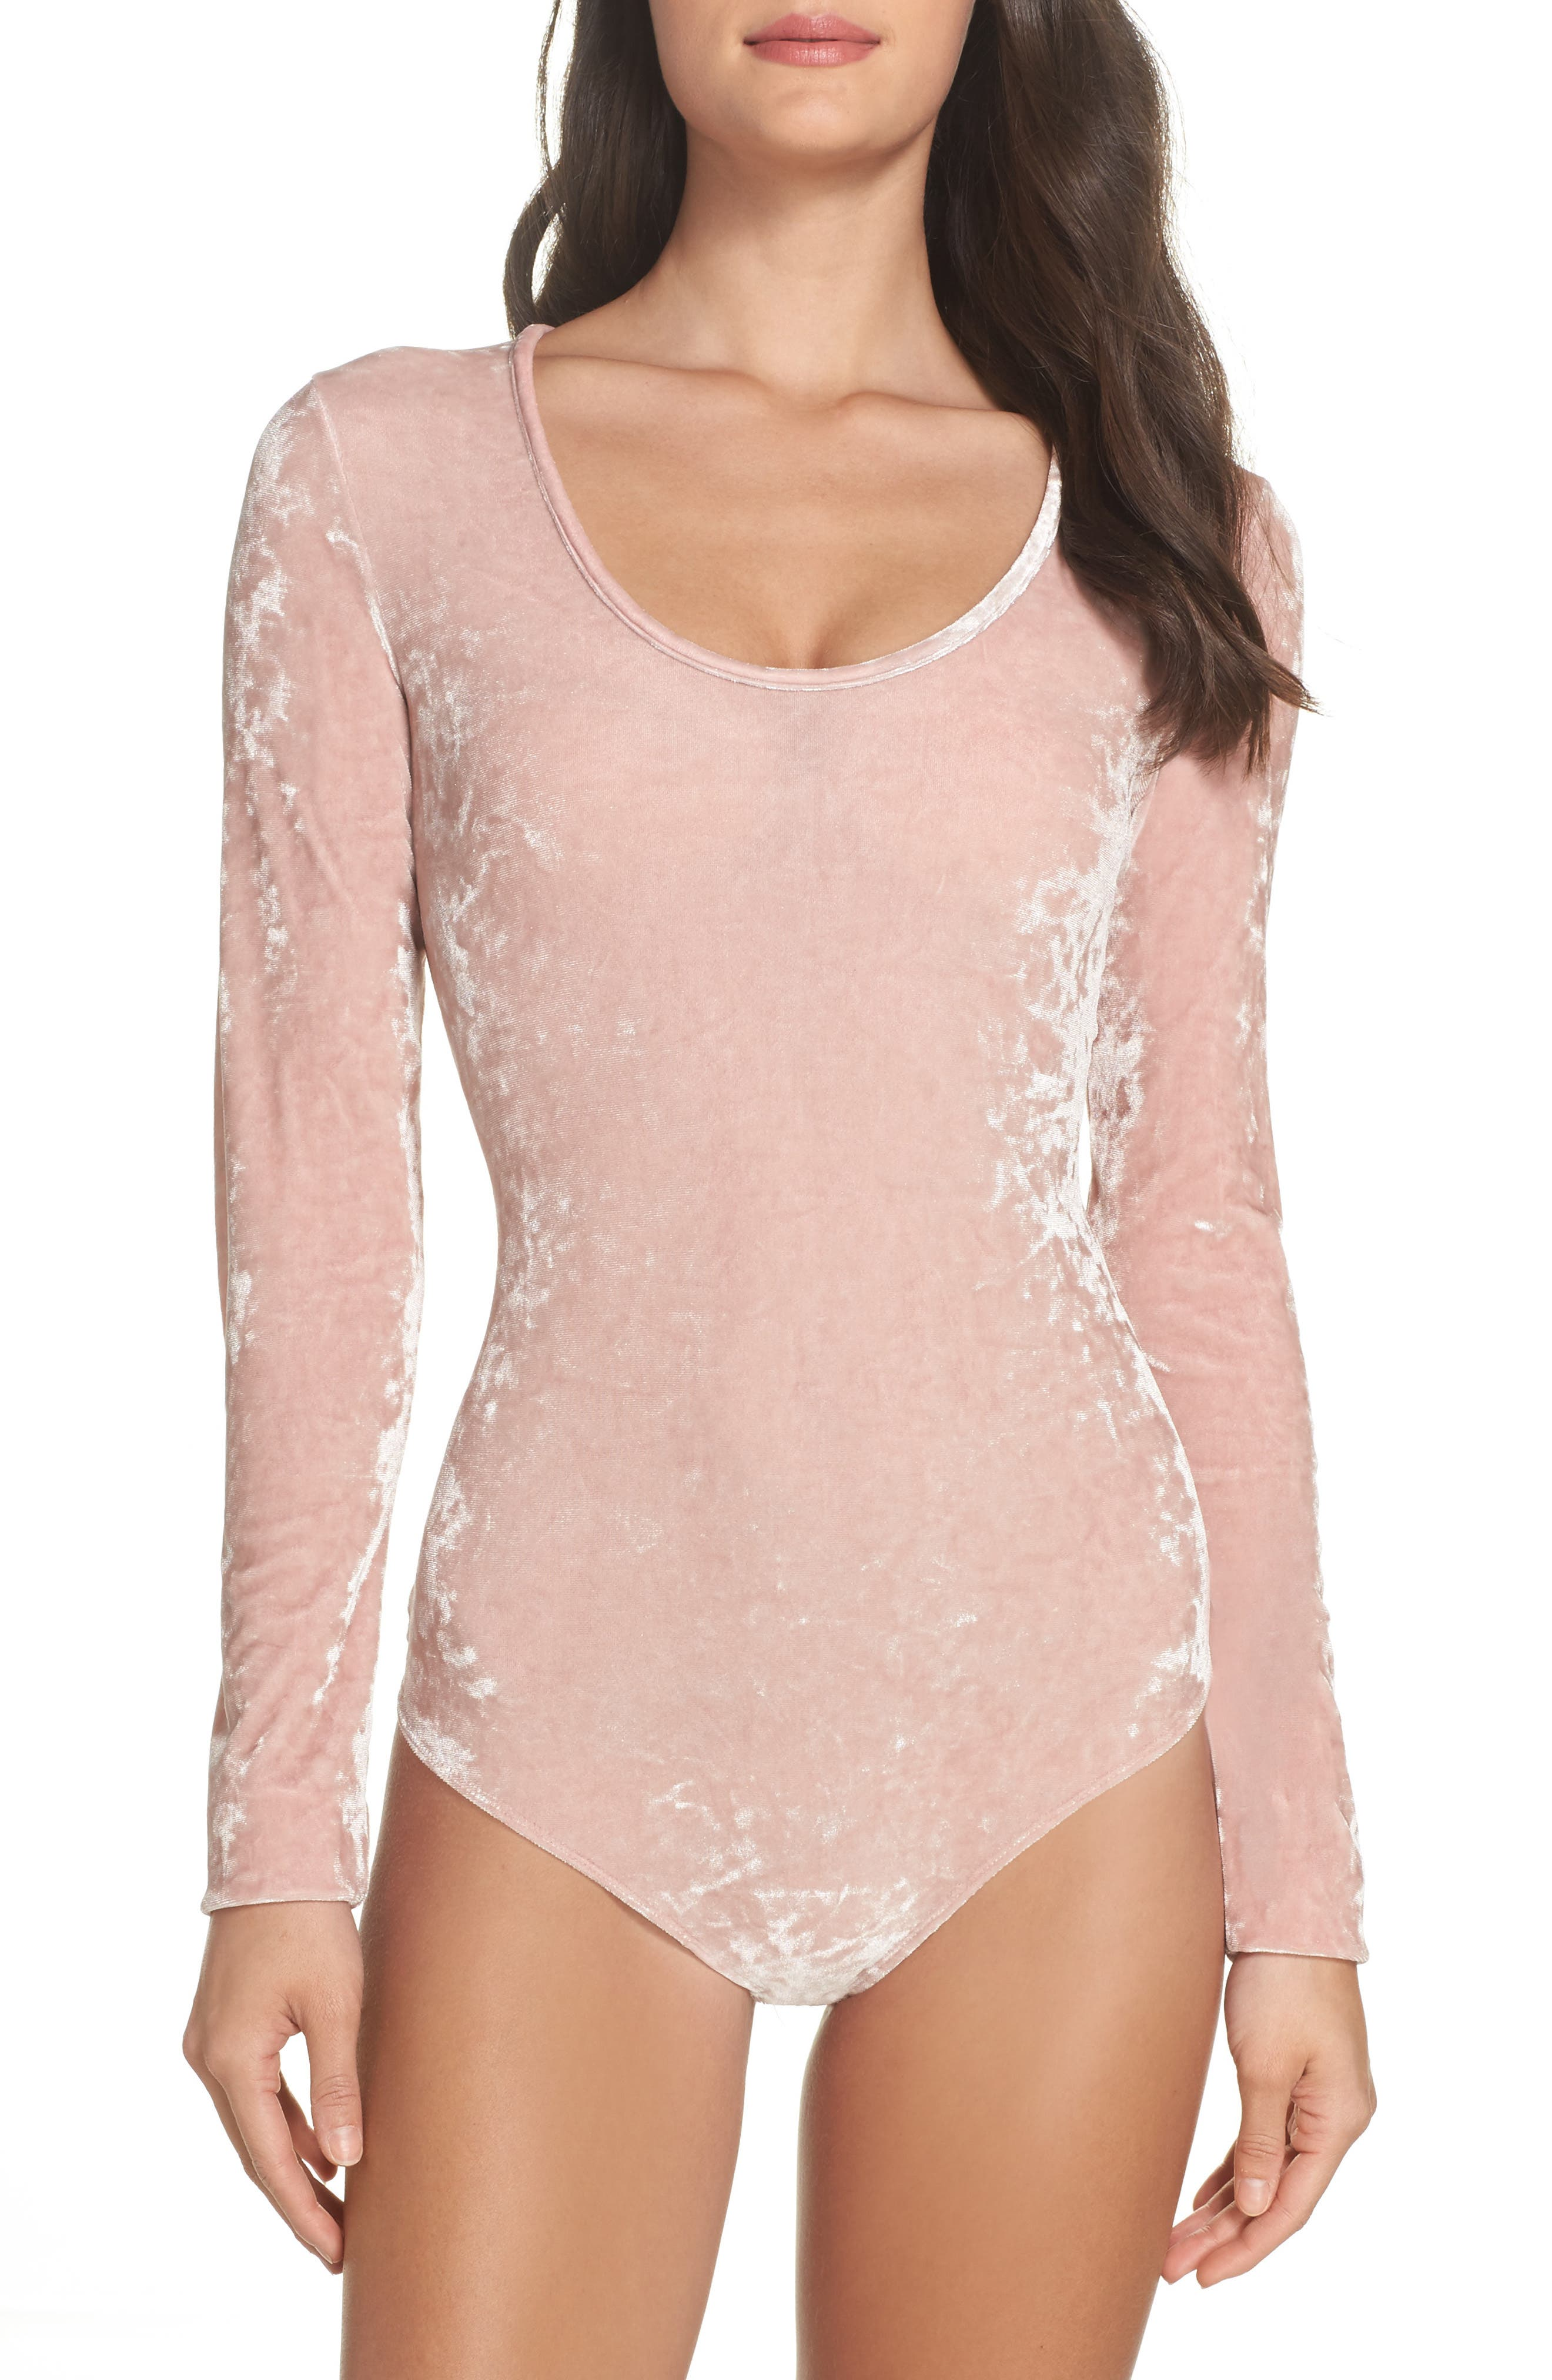 Alternate Image 1 Selected - Cosabella Bisou Tex Thong Bodysuit